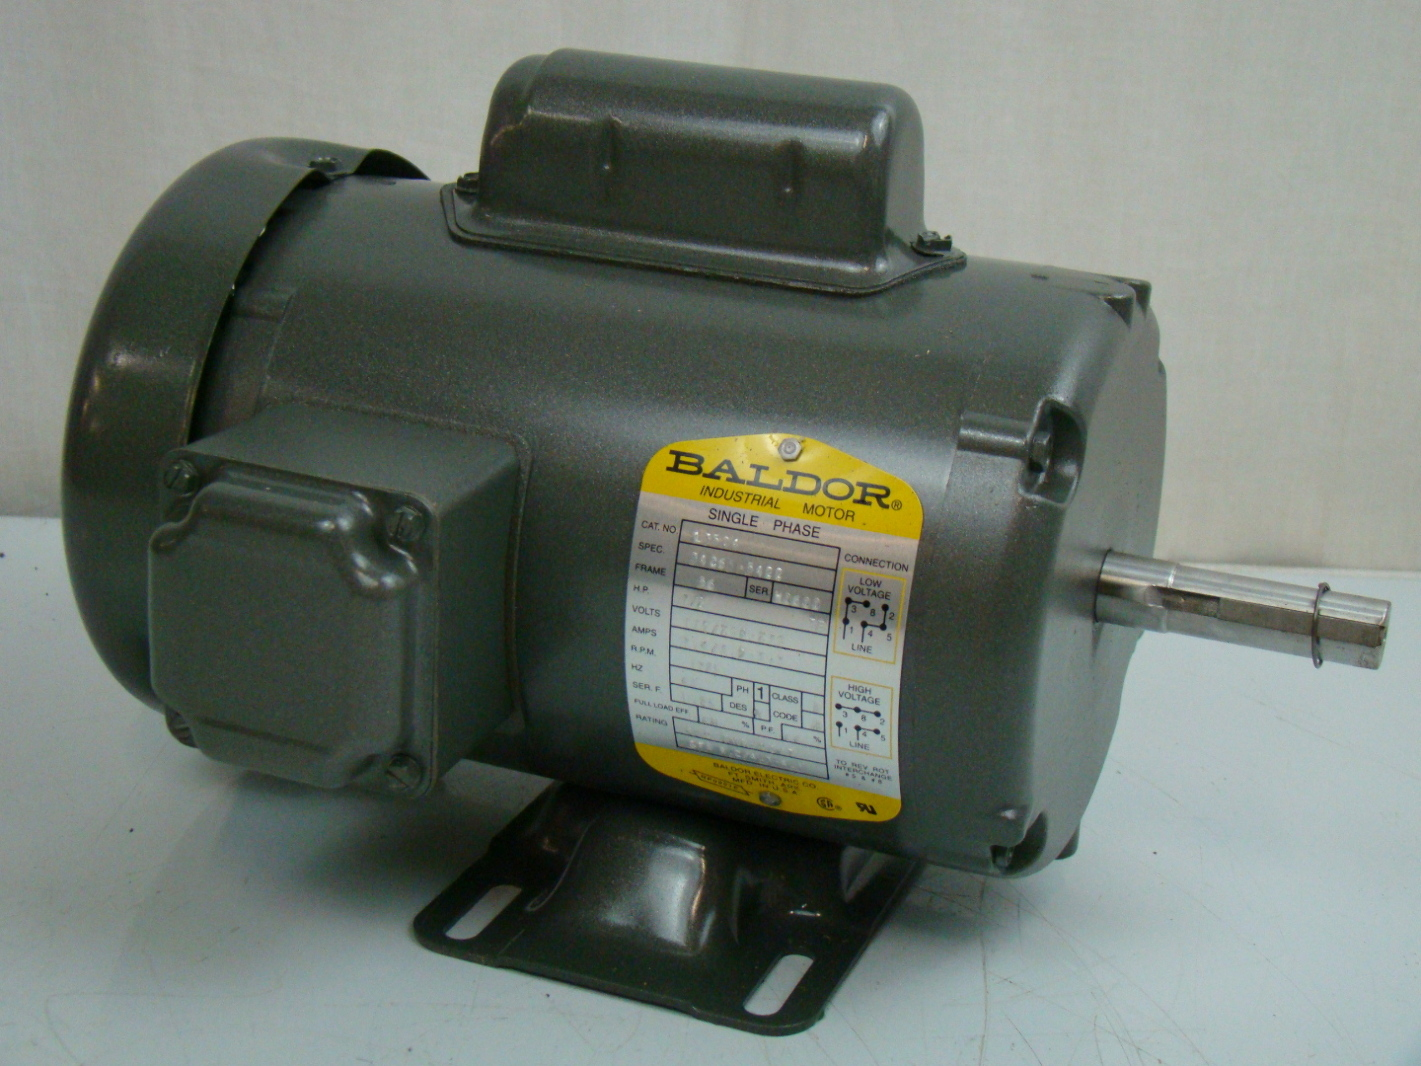 Baldor 1 2 hp single phase electric motor 115 208 230v 56 for Baldor electric motor parts